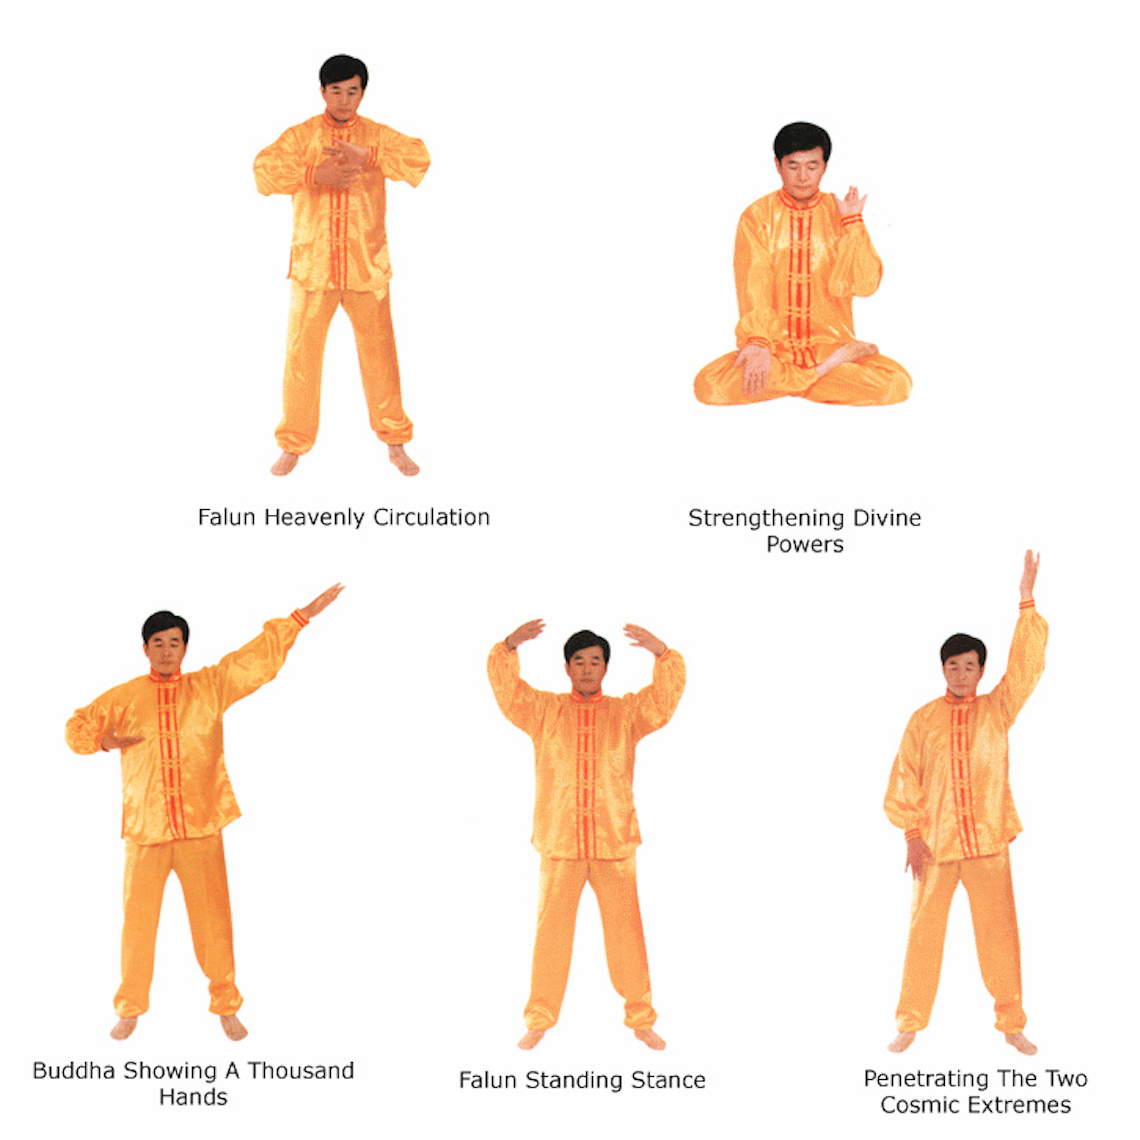 Mr. Li Hongzhi demos Falun Gong exercises.